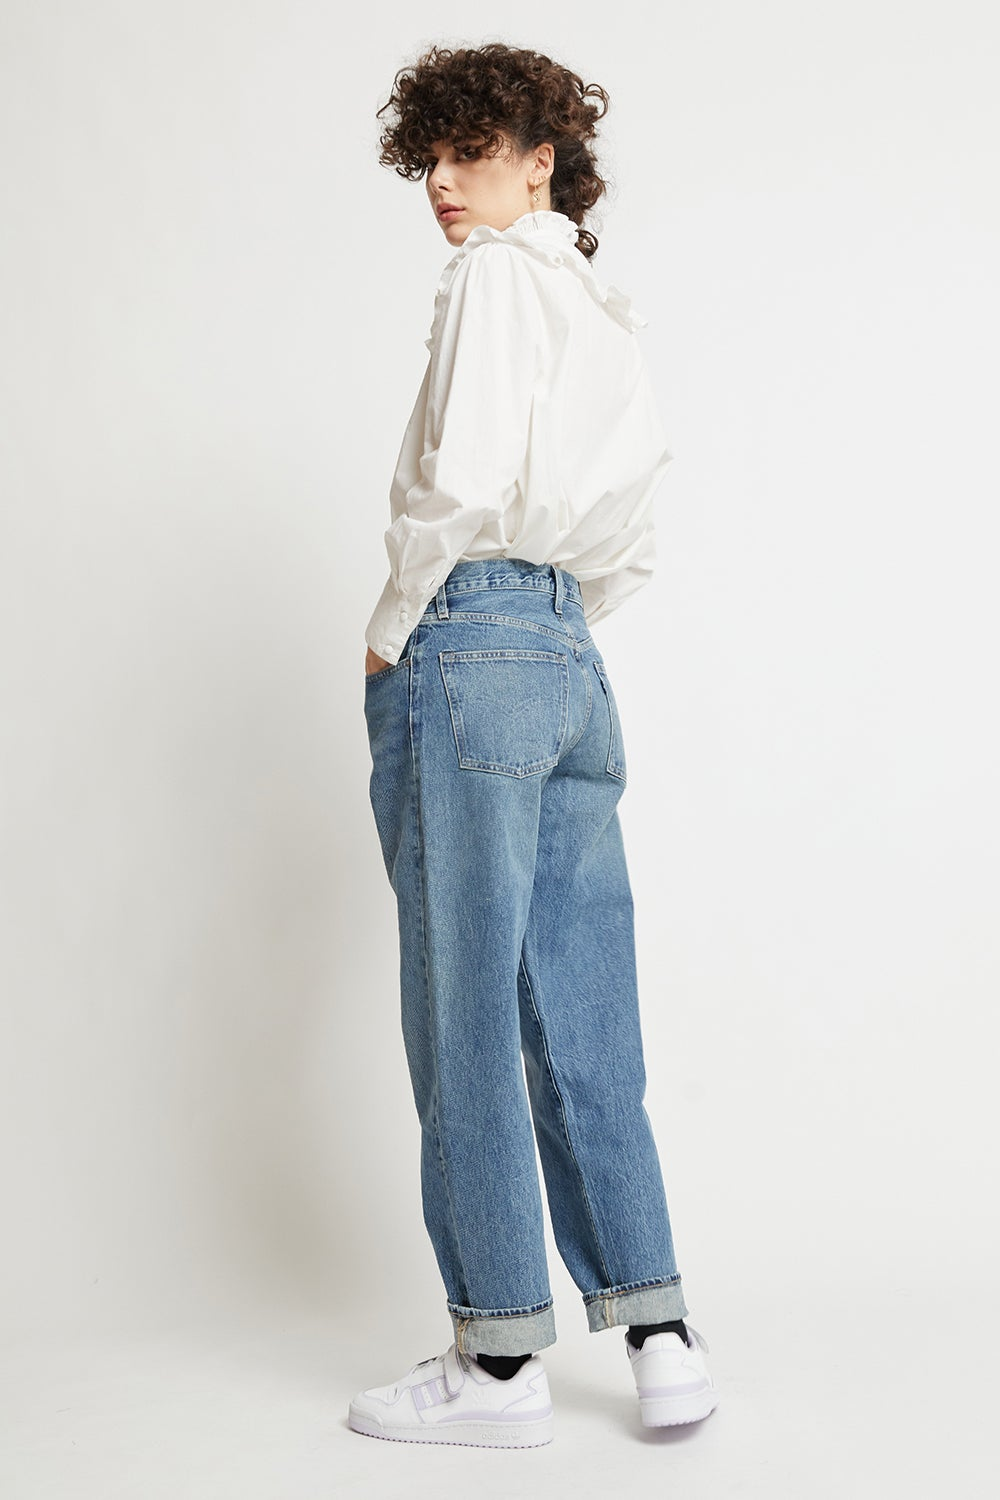 Levi's Made and Crafted The Column Coastal Blue